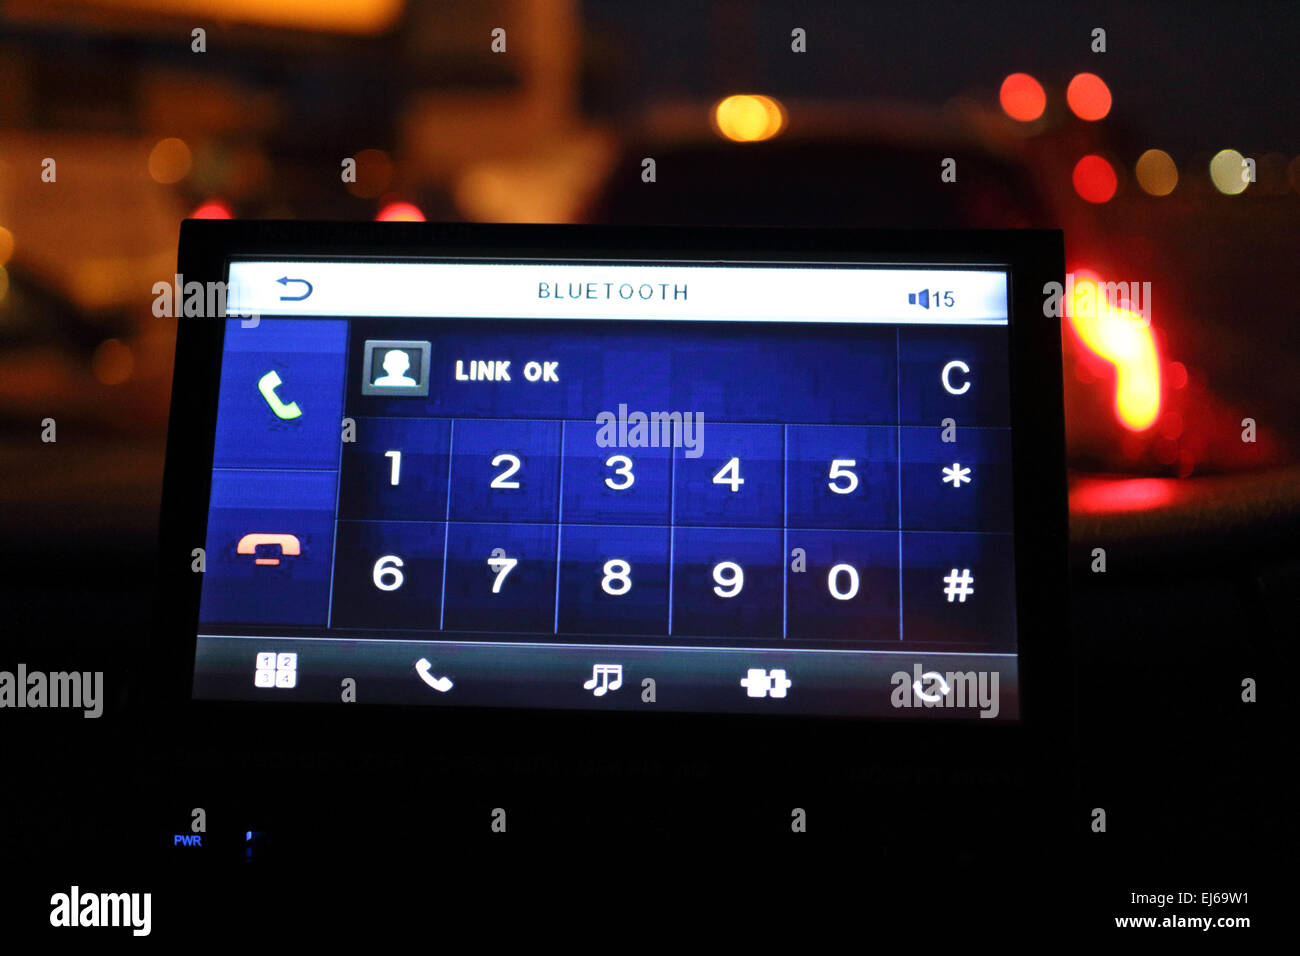 bluetooth mobile phone link screen in vehicle dashboard in traffic at night Stock Photo